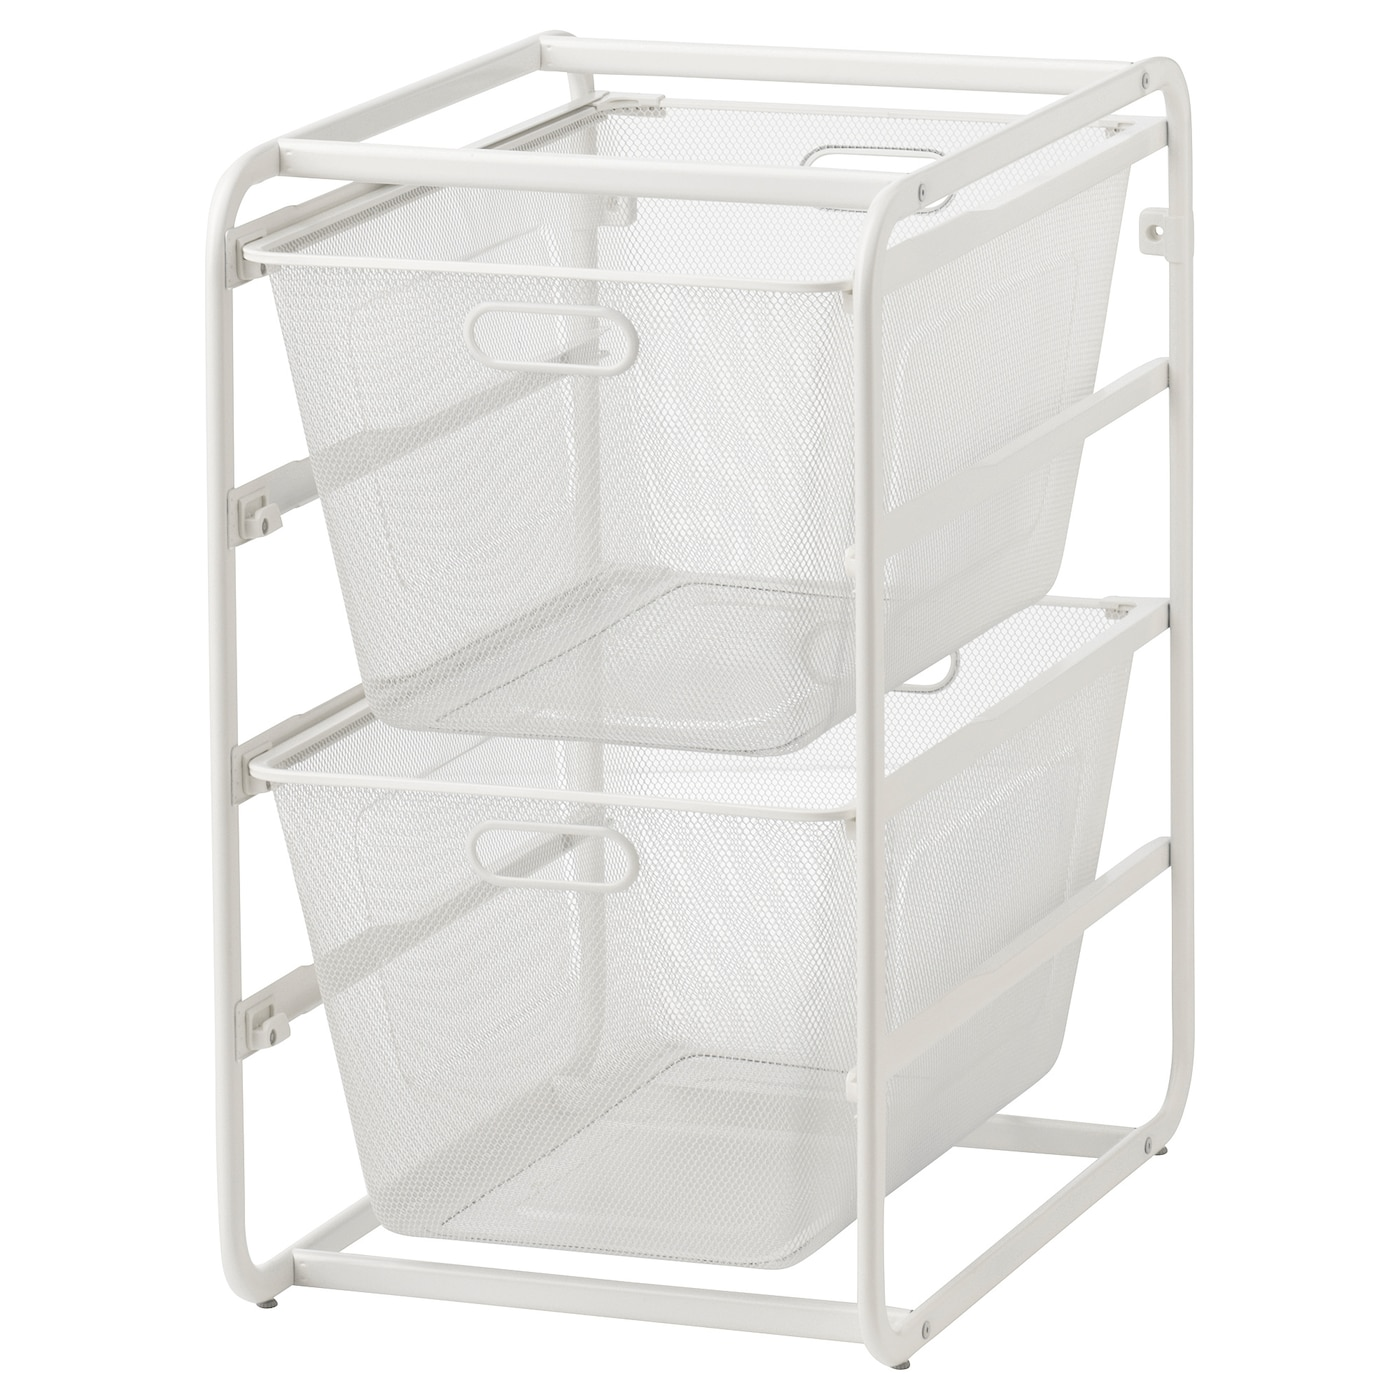 IKEA ALGOT frame with mesh baskets Can also be used in bathrooms and other damp areas indoors.